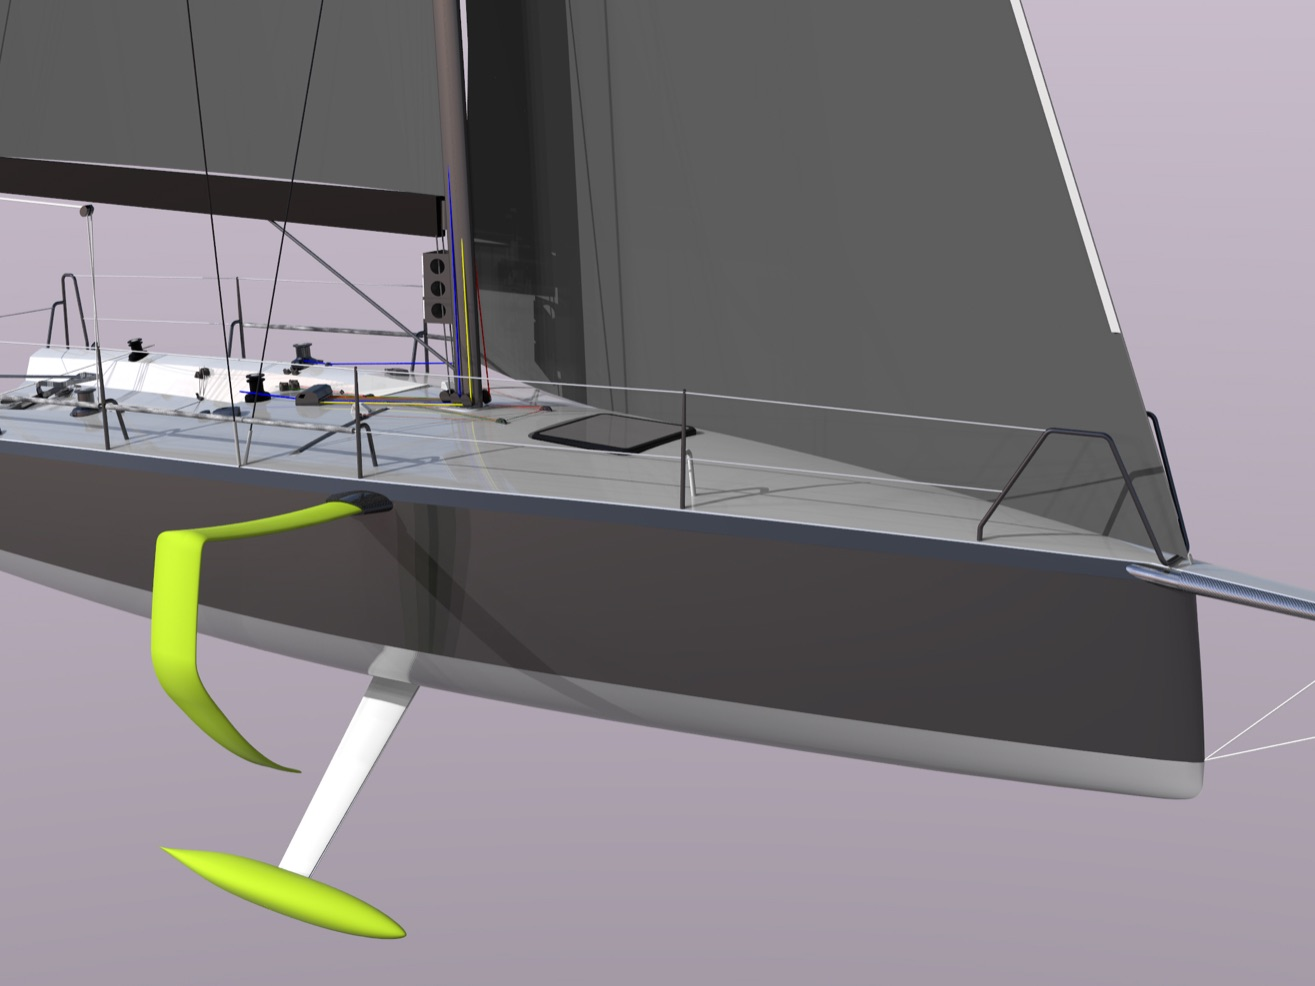 A cruiser racer Nautic DNA. Work in progress.